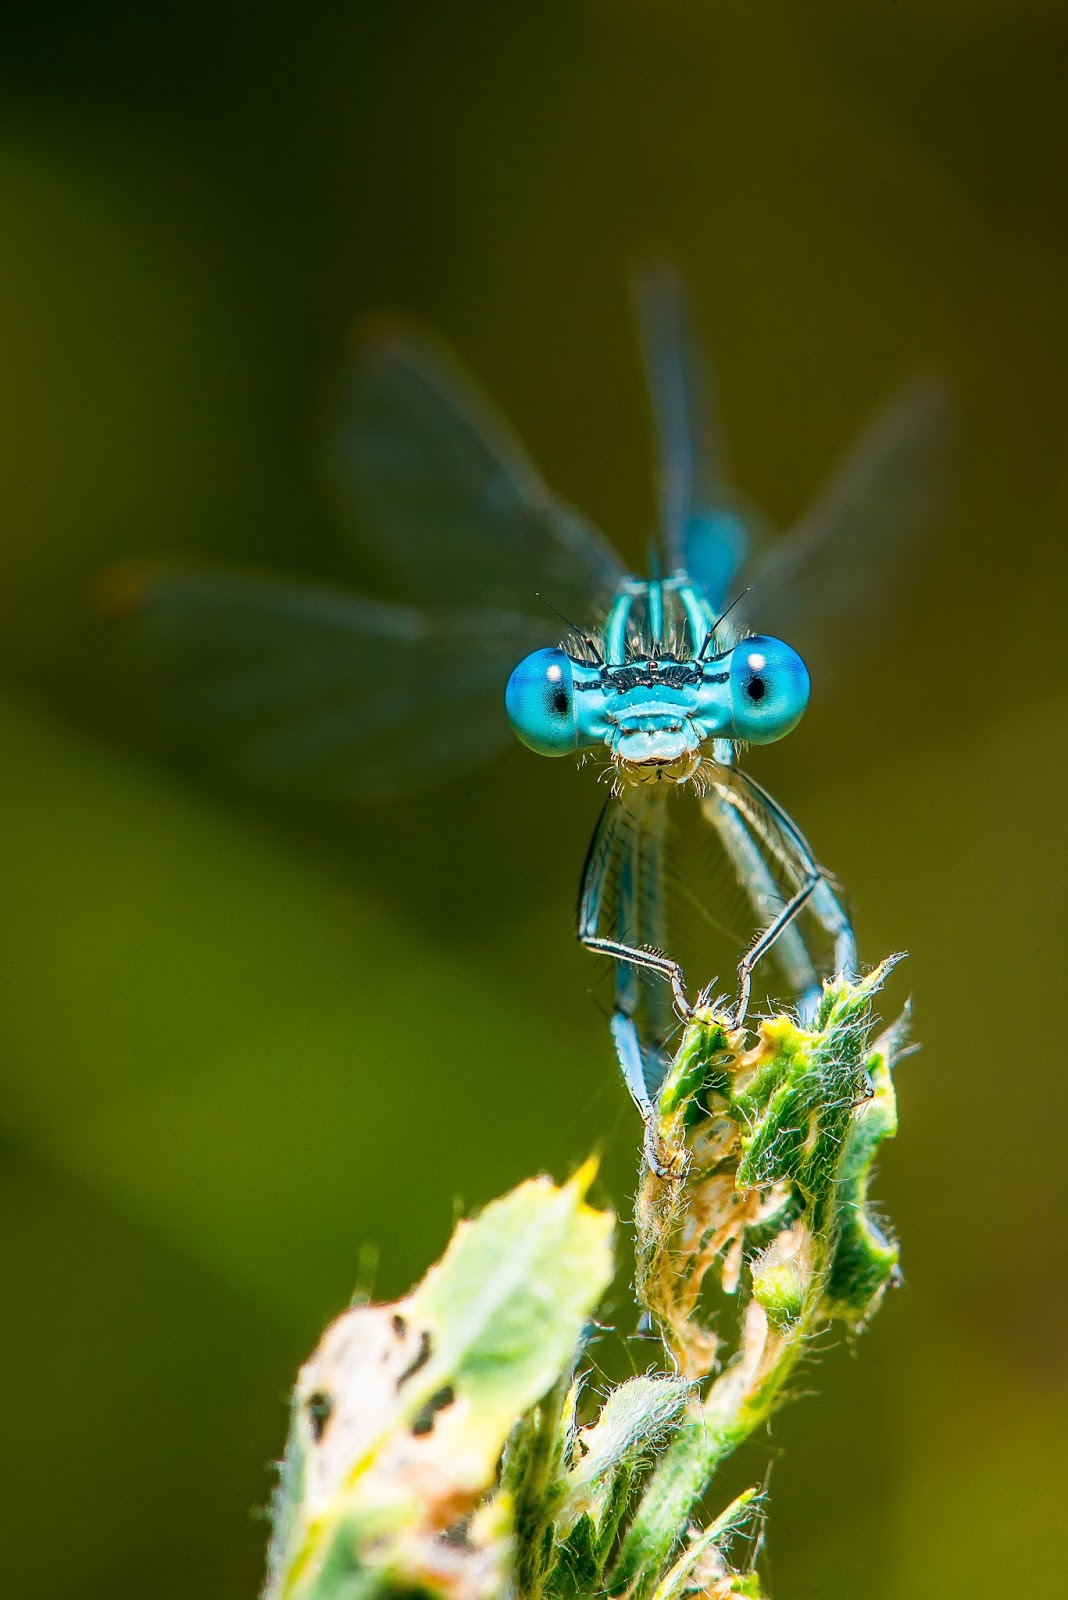 Picture of a blue dragonfly up close.